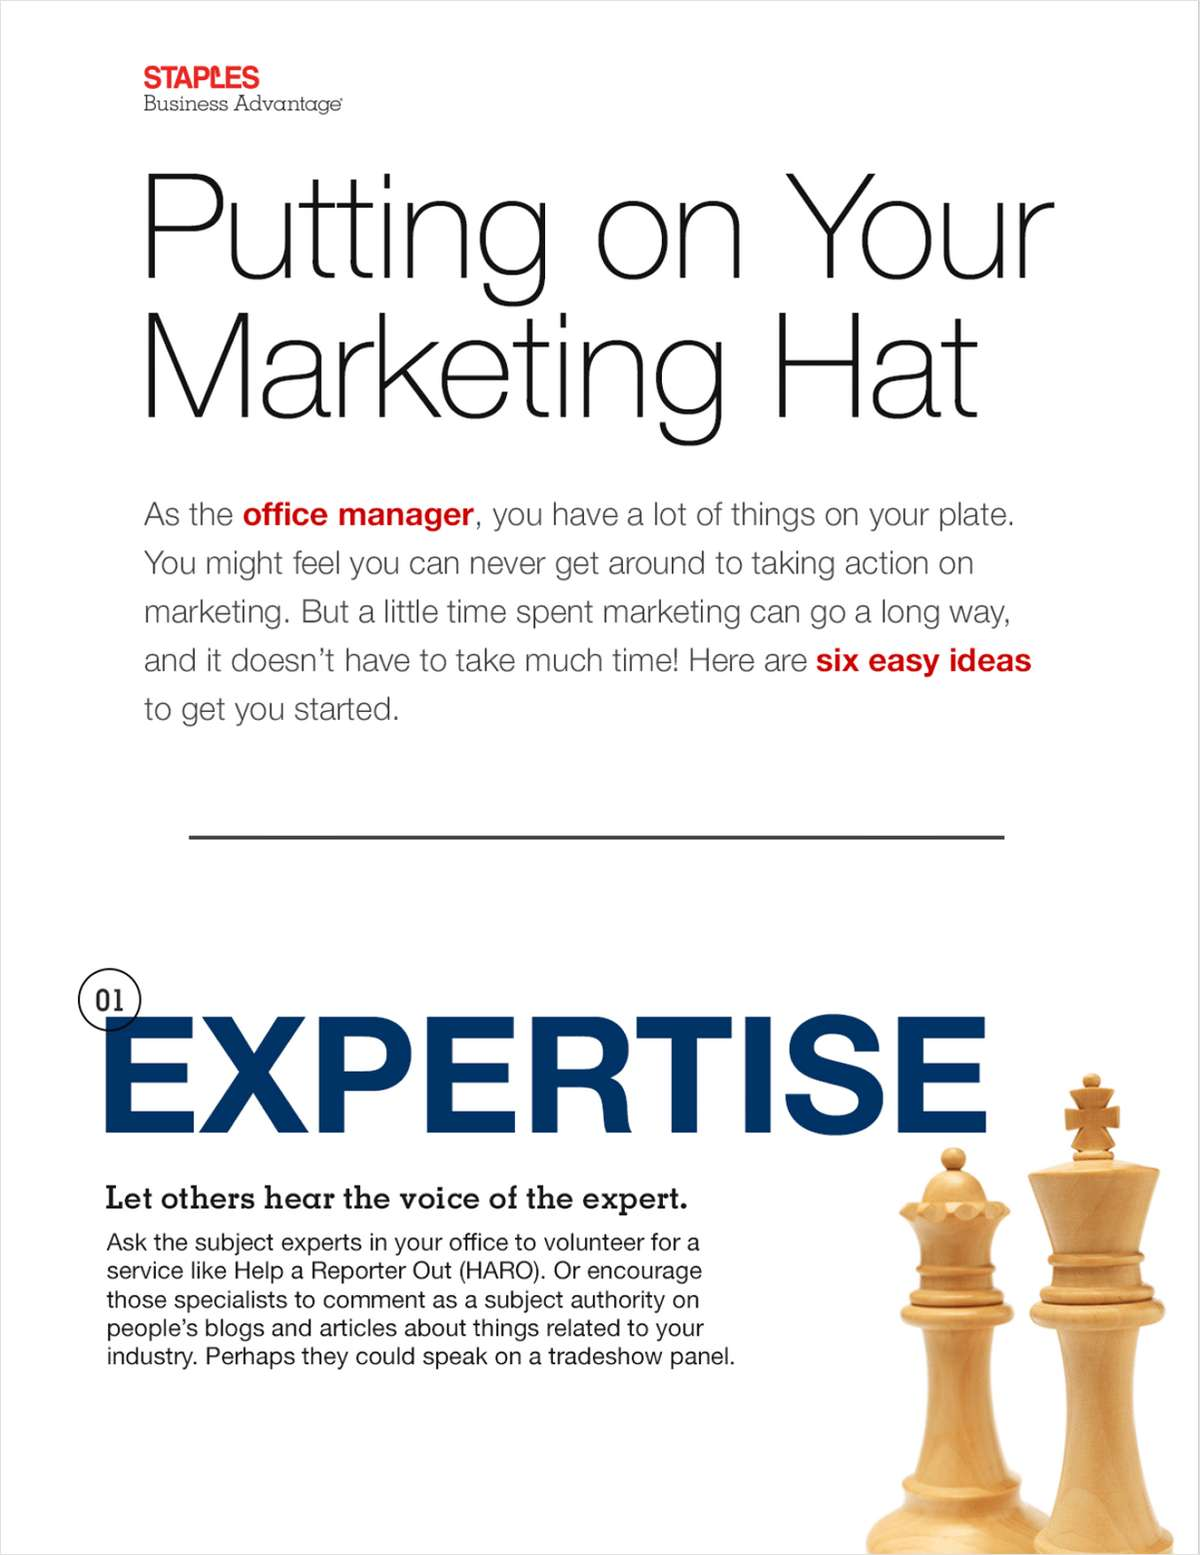 Marketing Tips for Office Managers